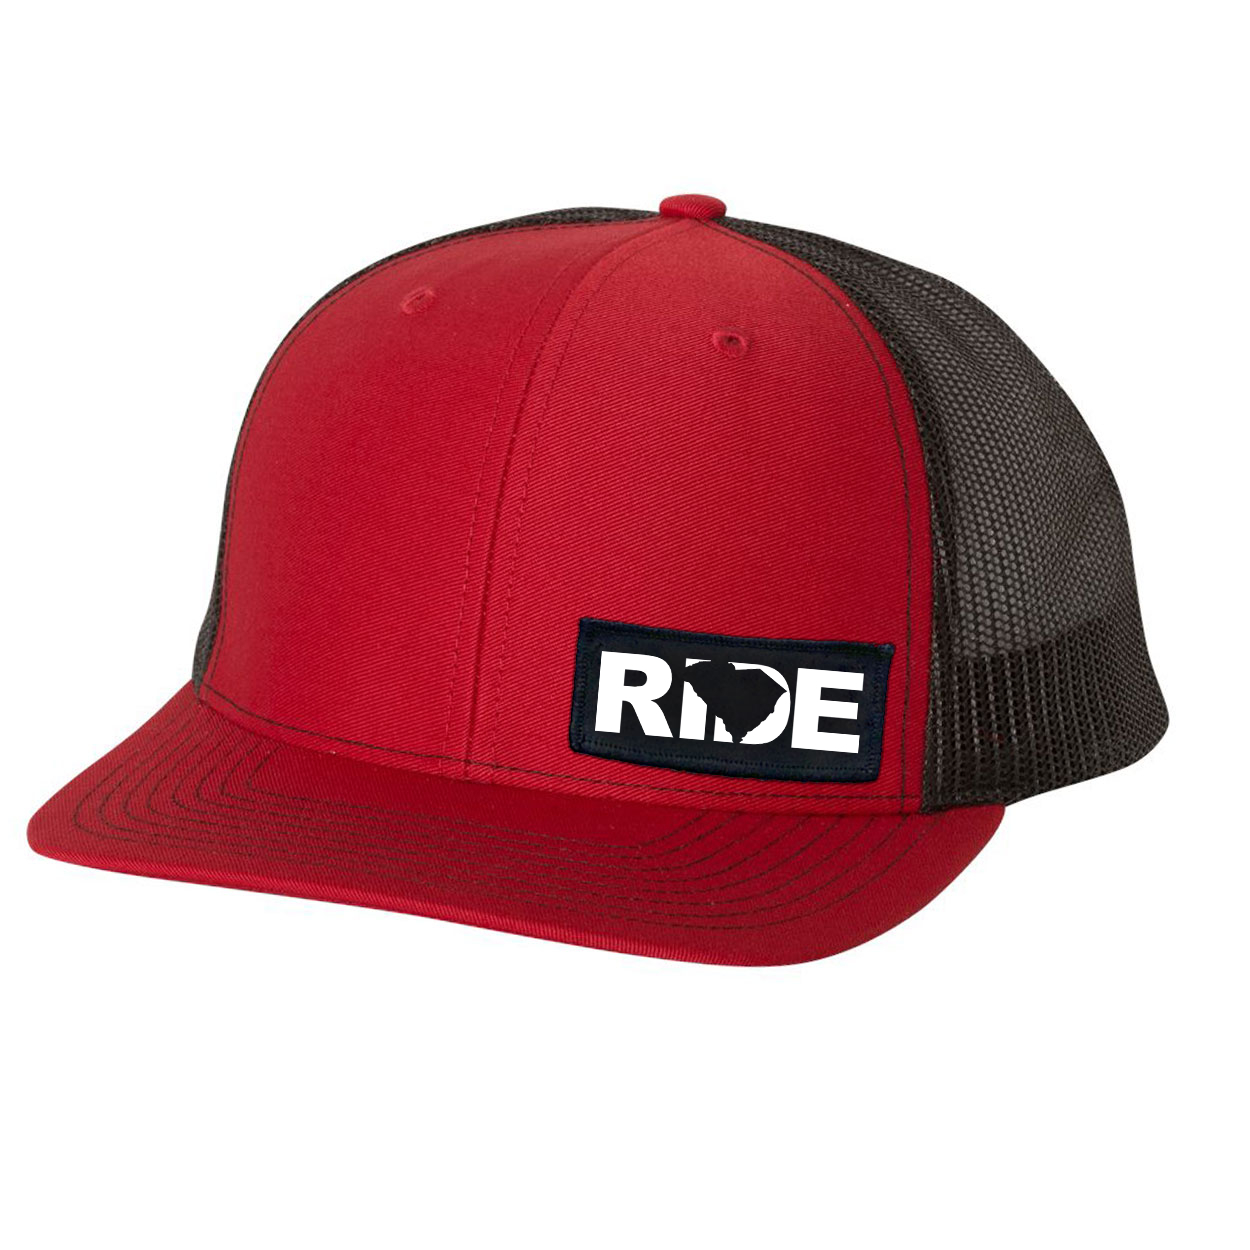 Ride South Carolina Night Out Woven Patch Snapback Trucker Hat Red/Black (White Logo)